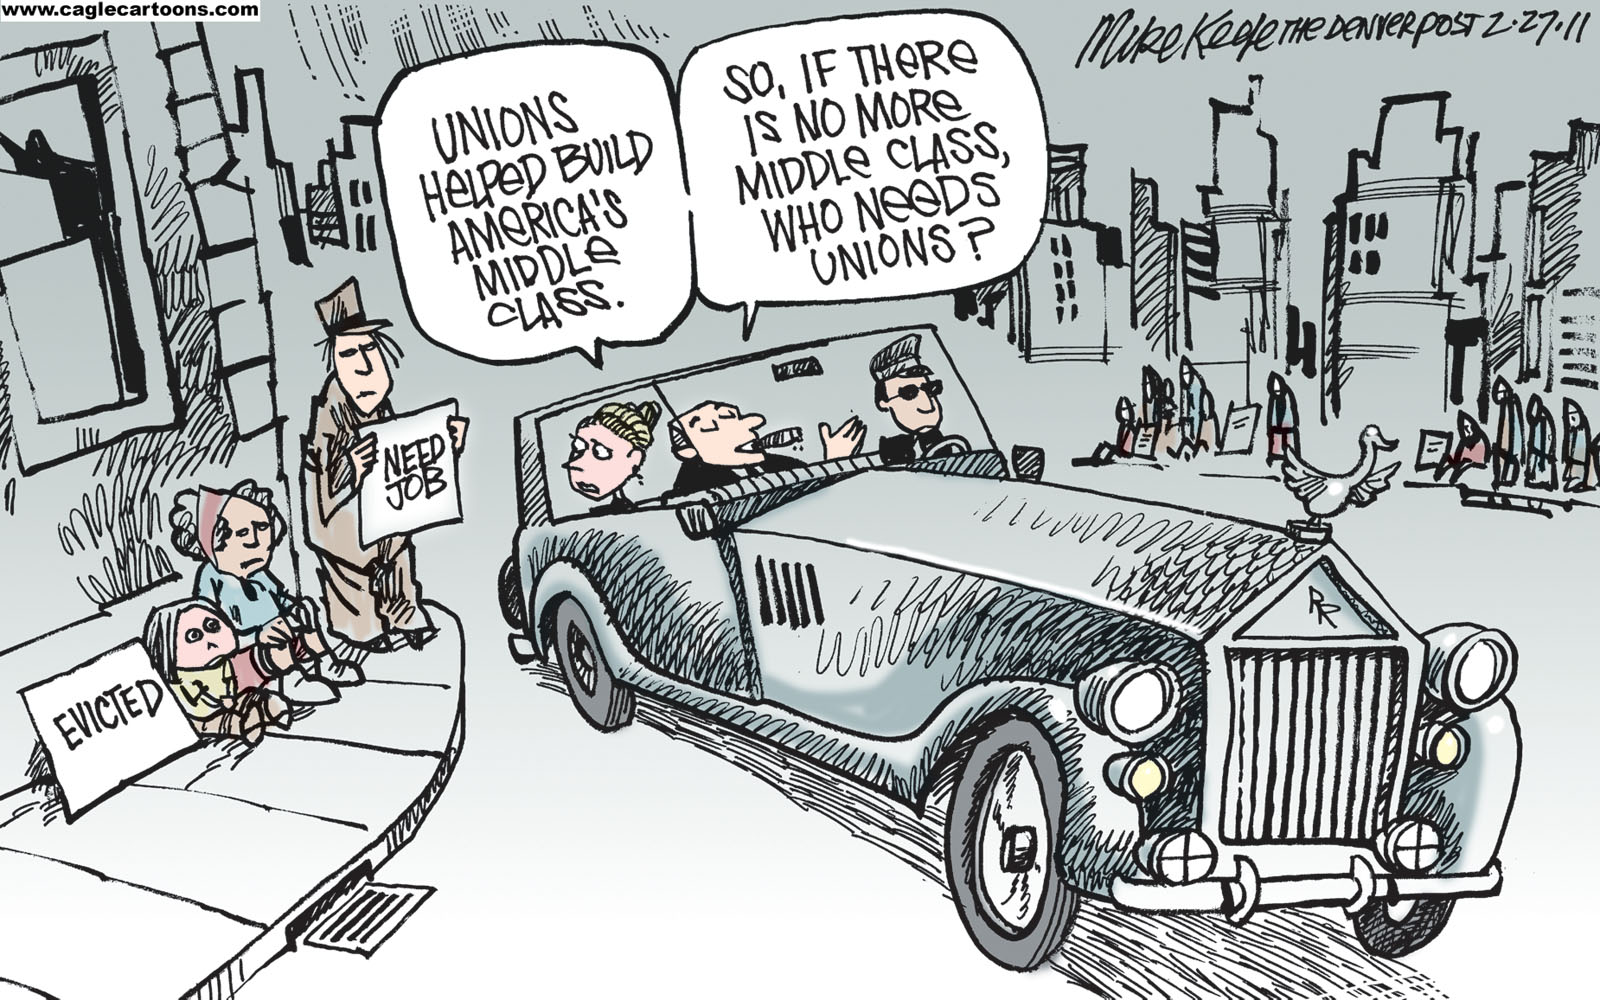 No More Middle Class